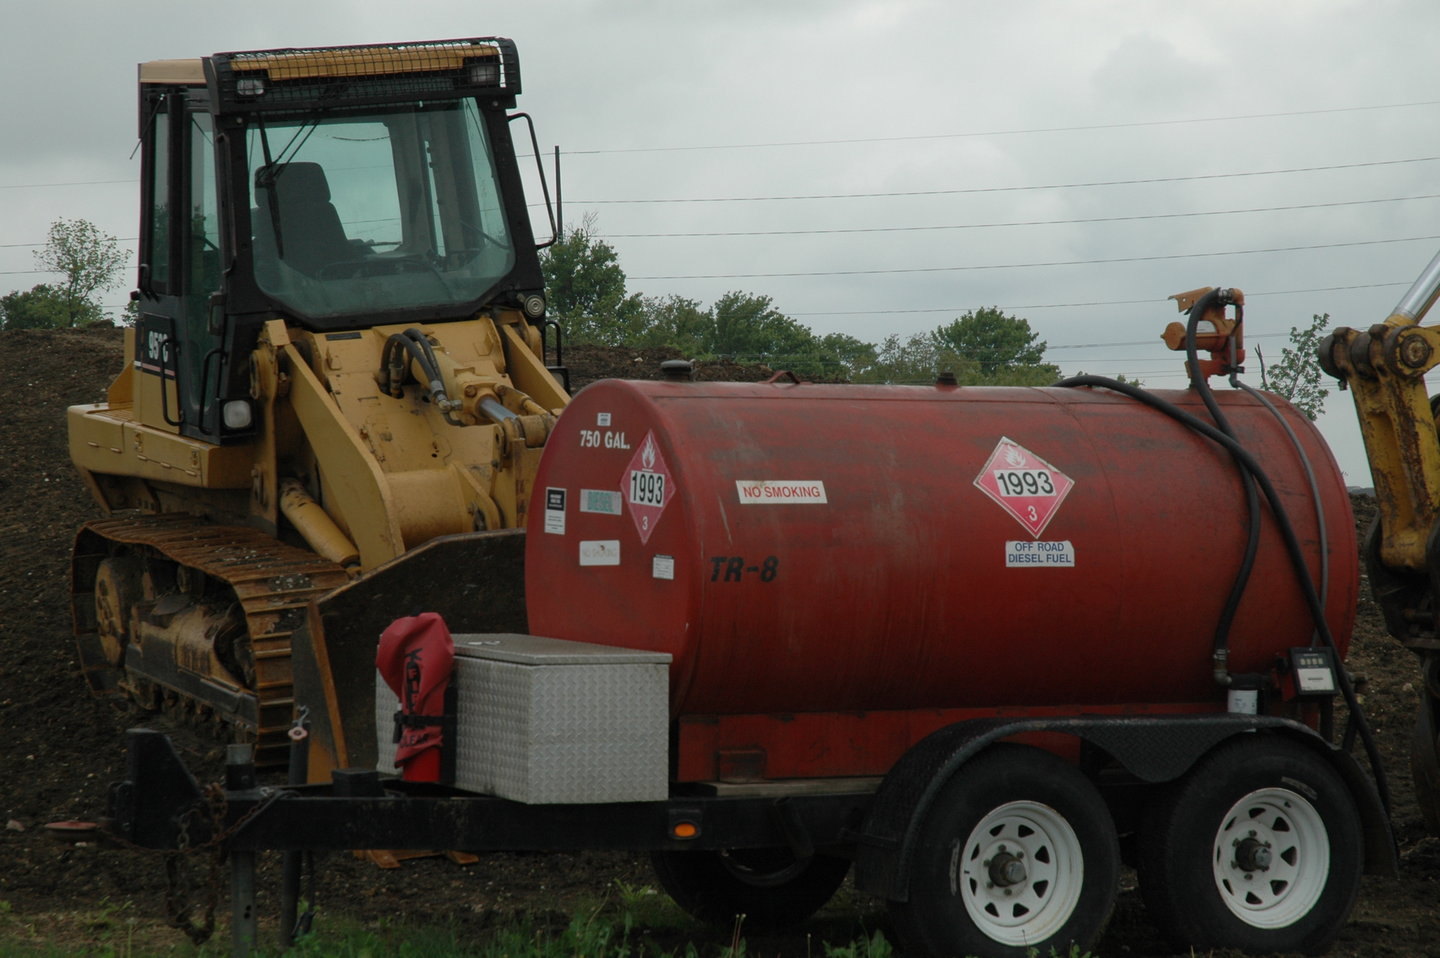 Several factors contribute to moisture accumulation, including climate, storage tank installation and fuel handling procedures. Temperature changes can cause suspended water in the fuel to settle out.